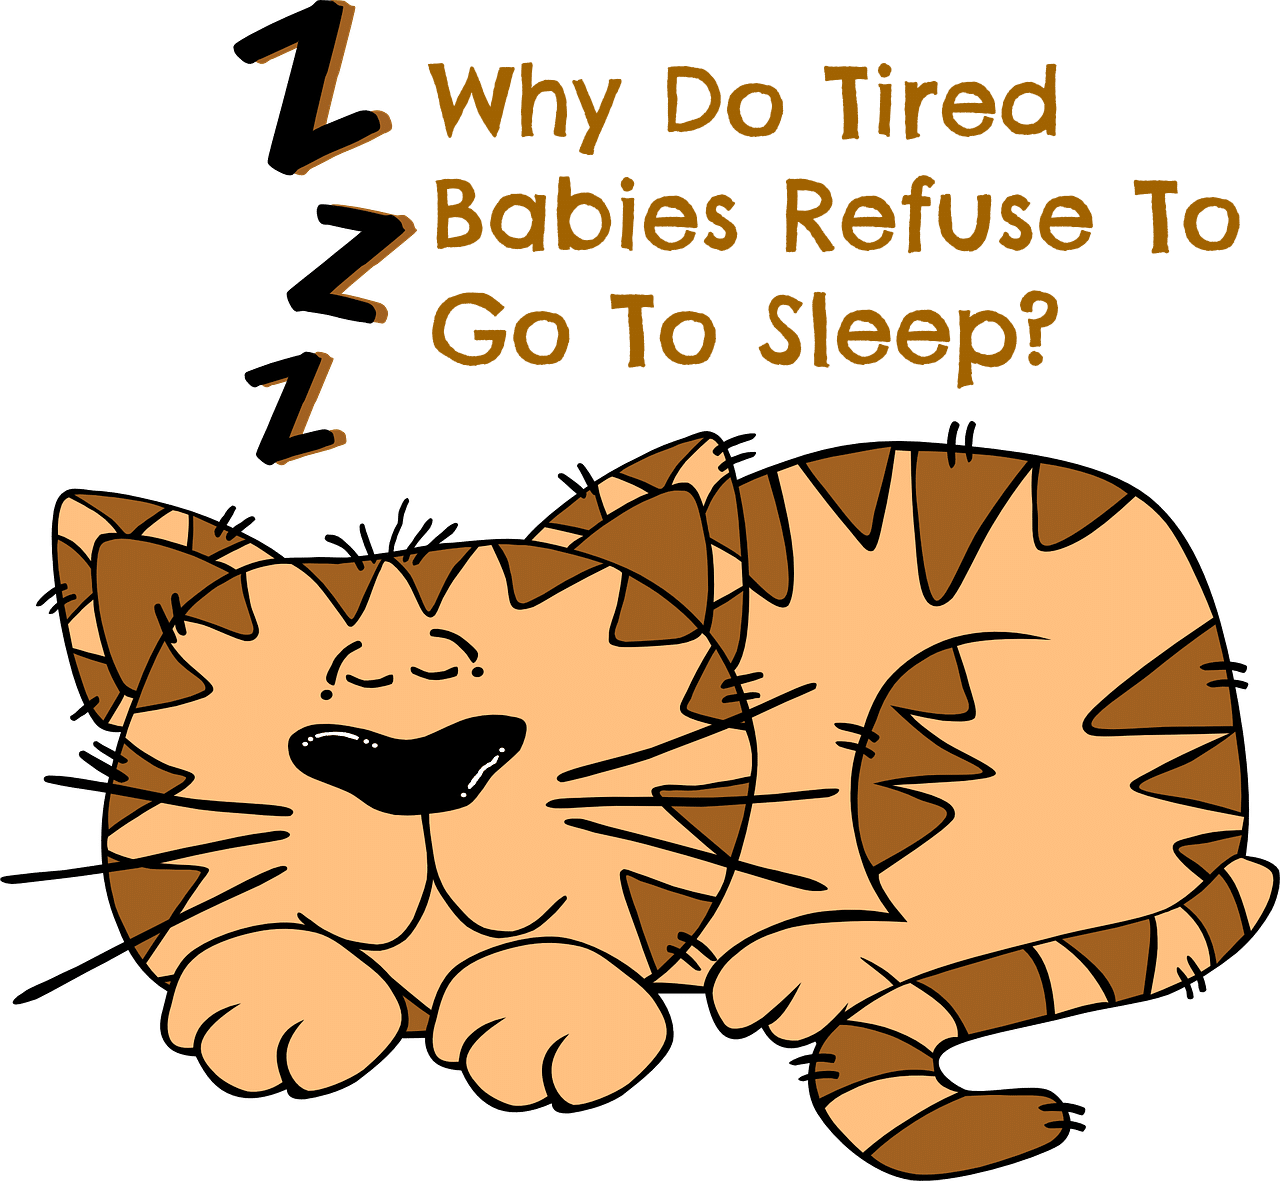 Why Do Tired Babies Refuse To Go To Sleep